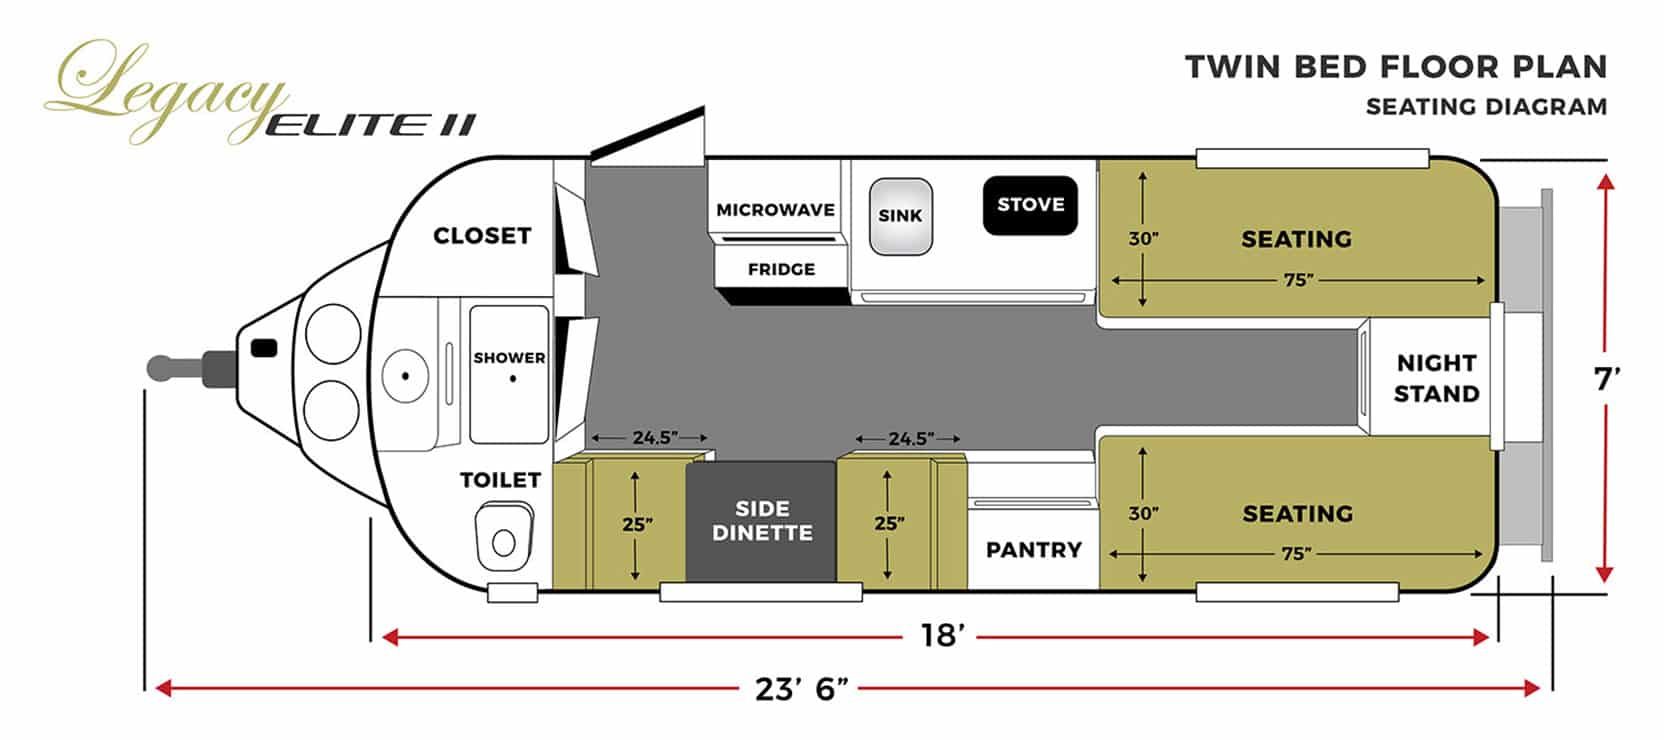 oliver travel trailers legacy elite 2 twin bed seating floor plan horizontal